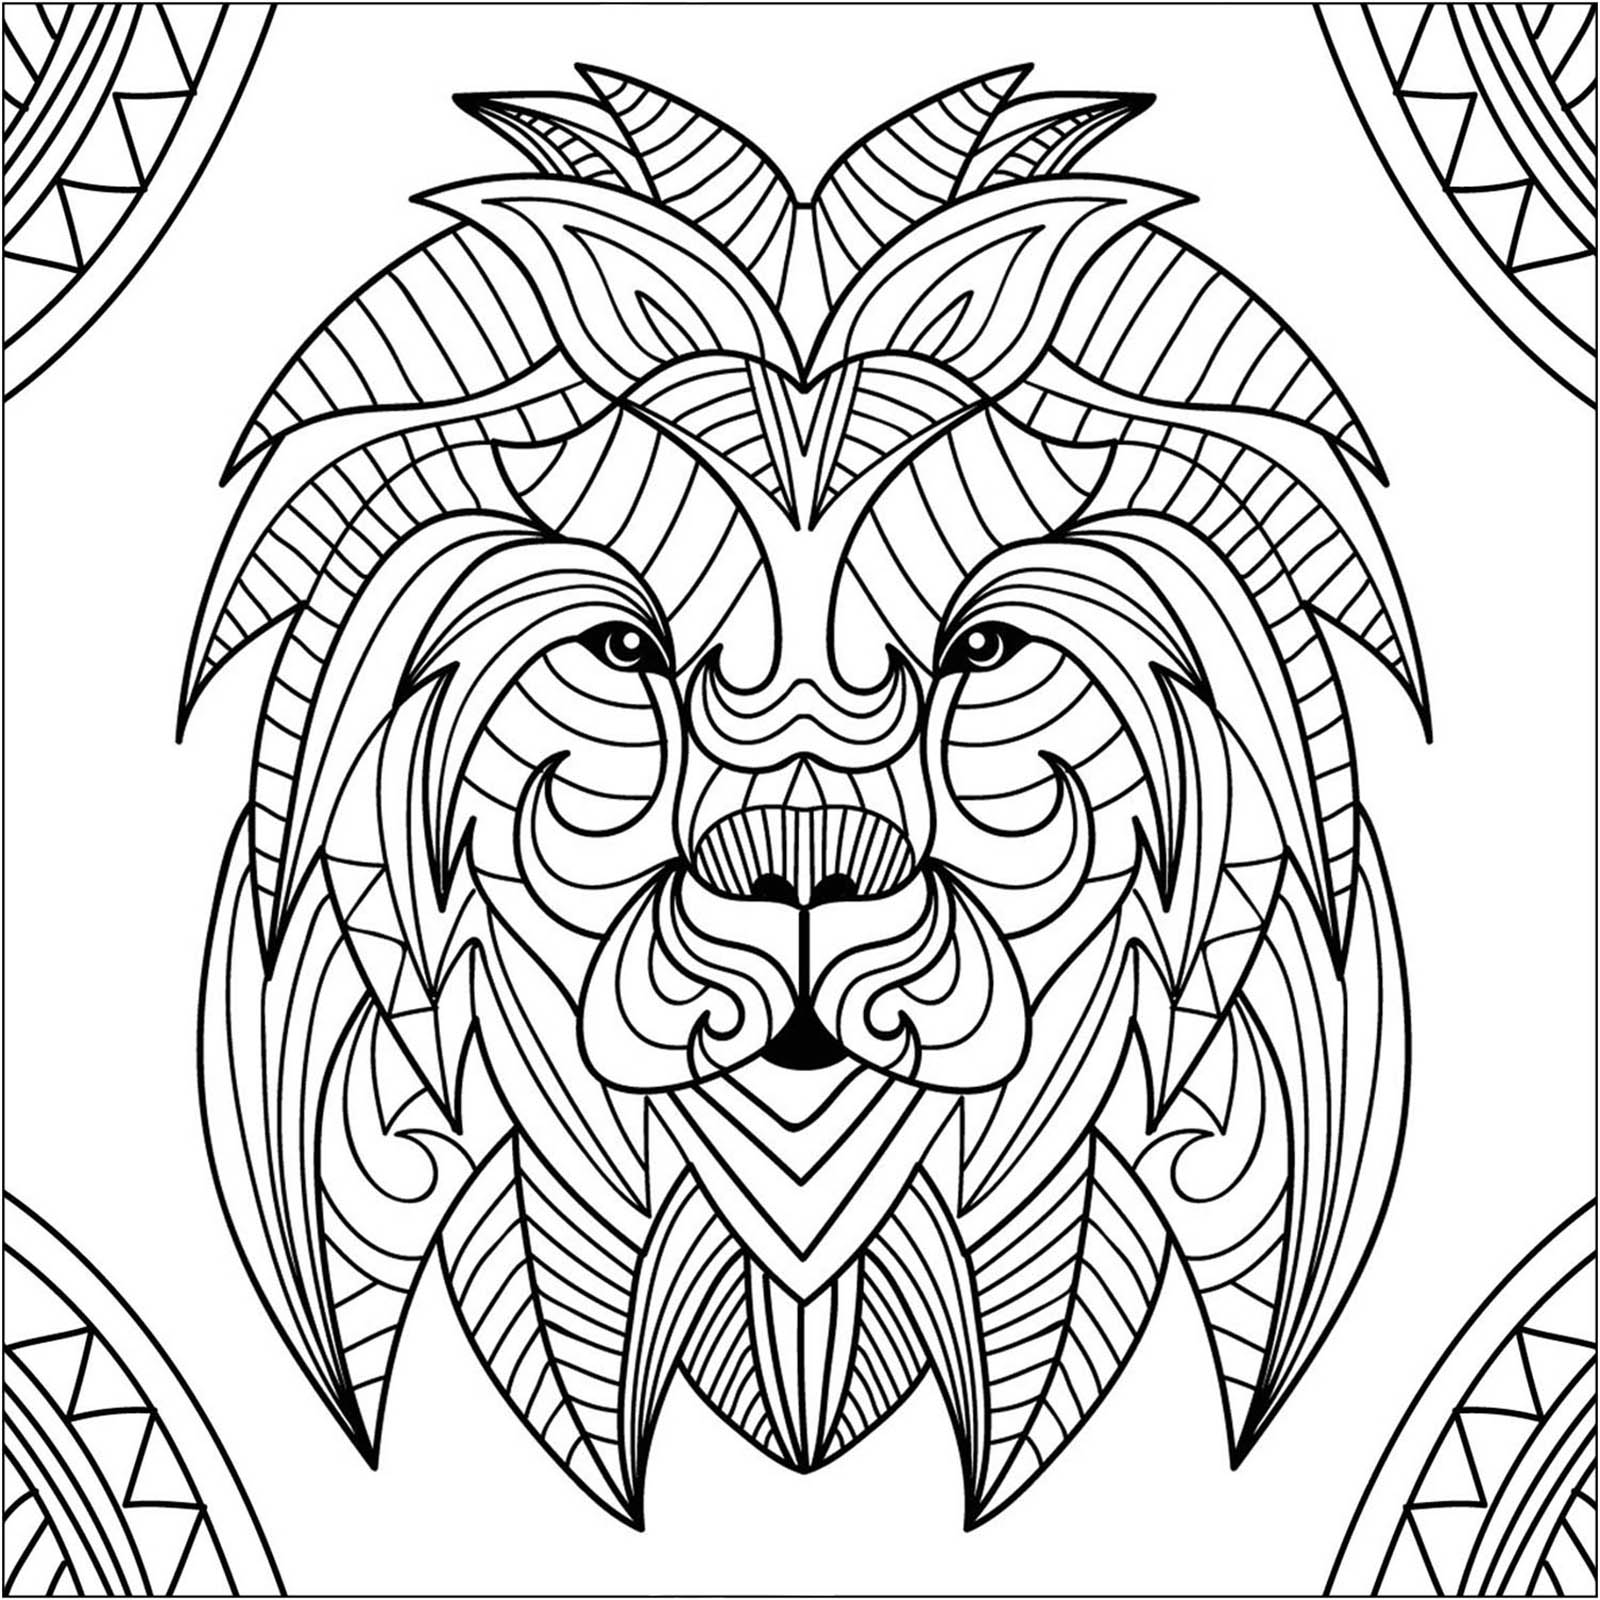 coloring pages of lion free printable lion coloring pages for kids lion coloring of pages